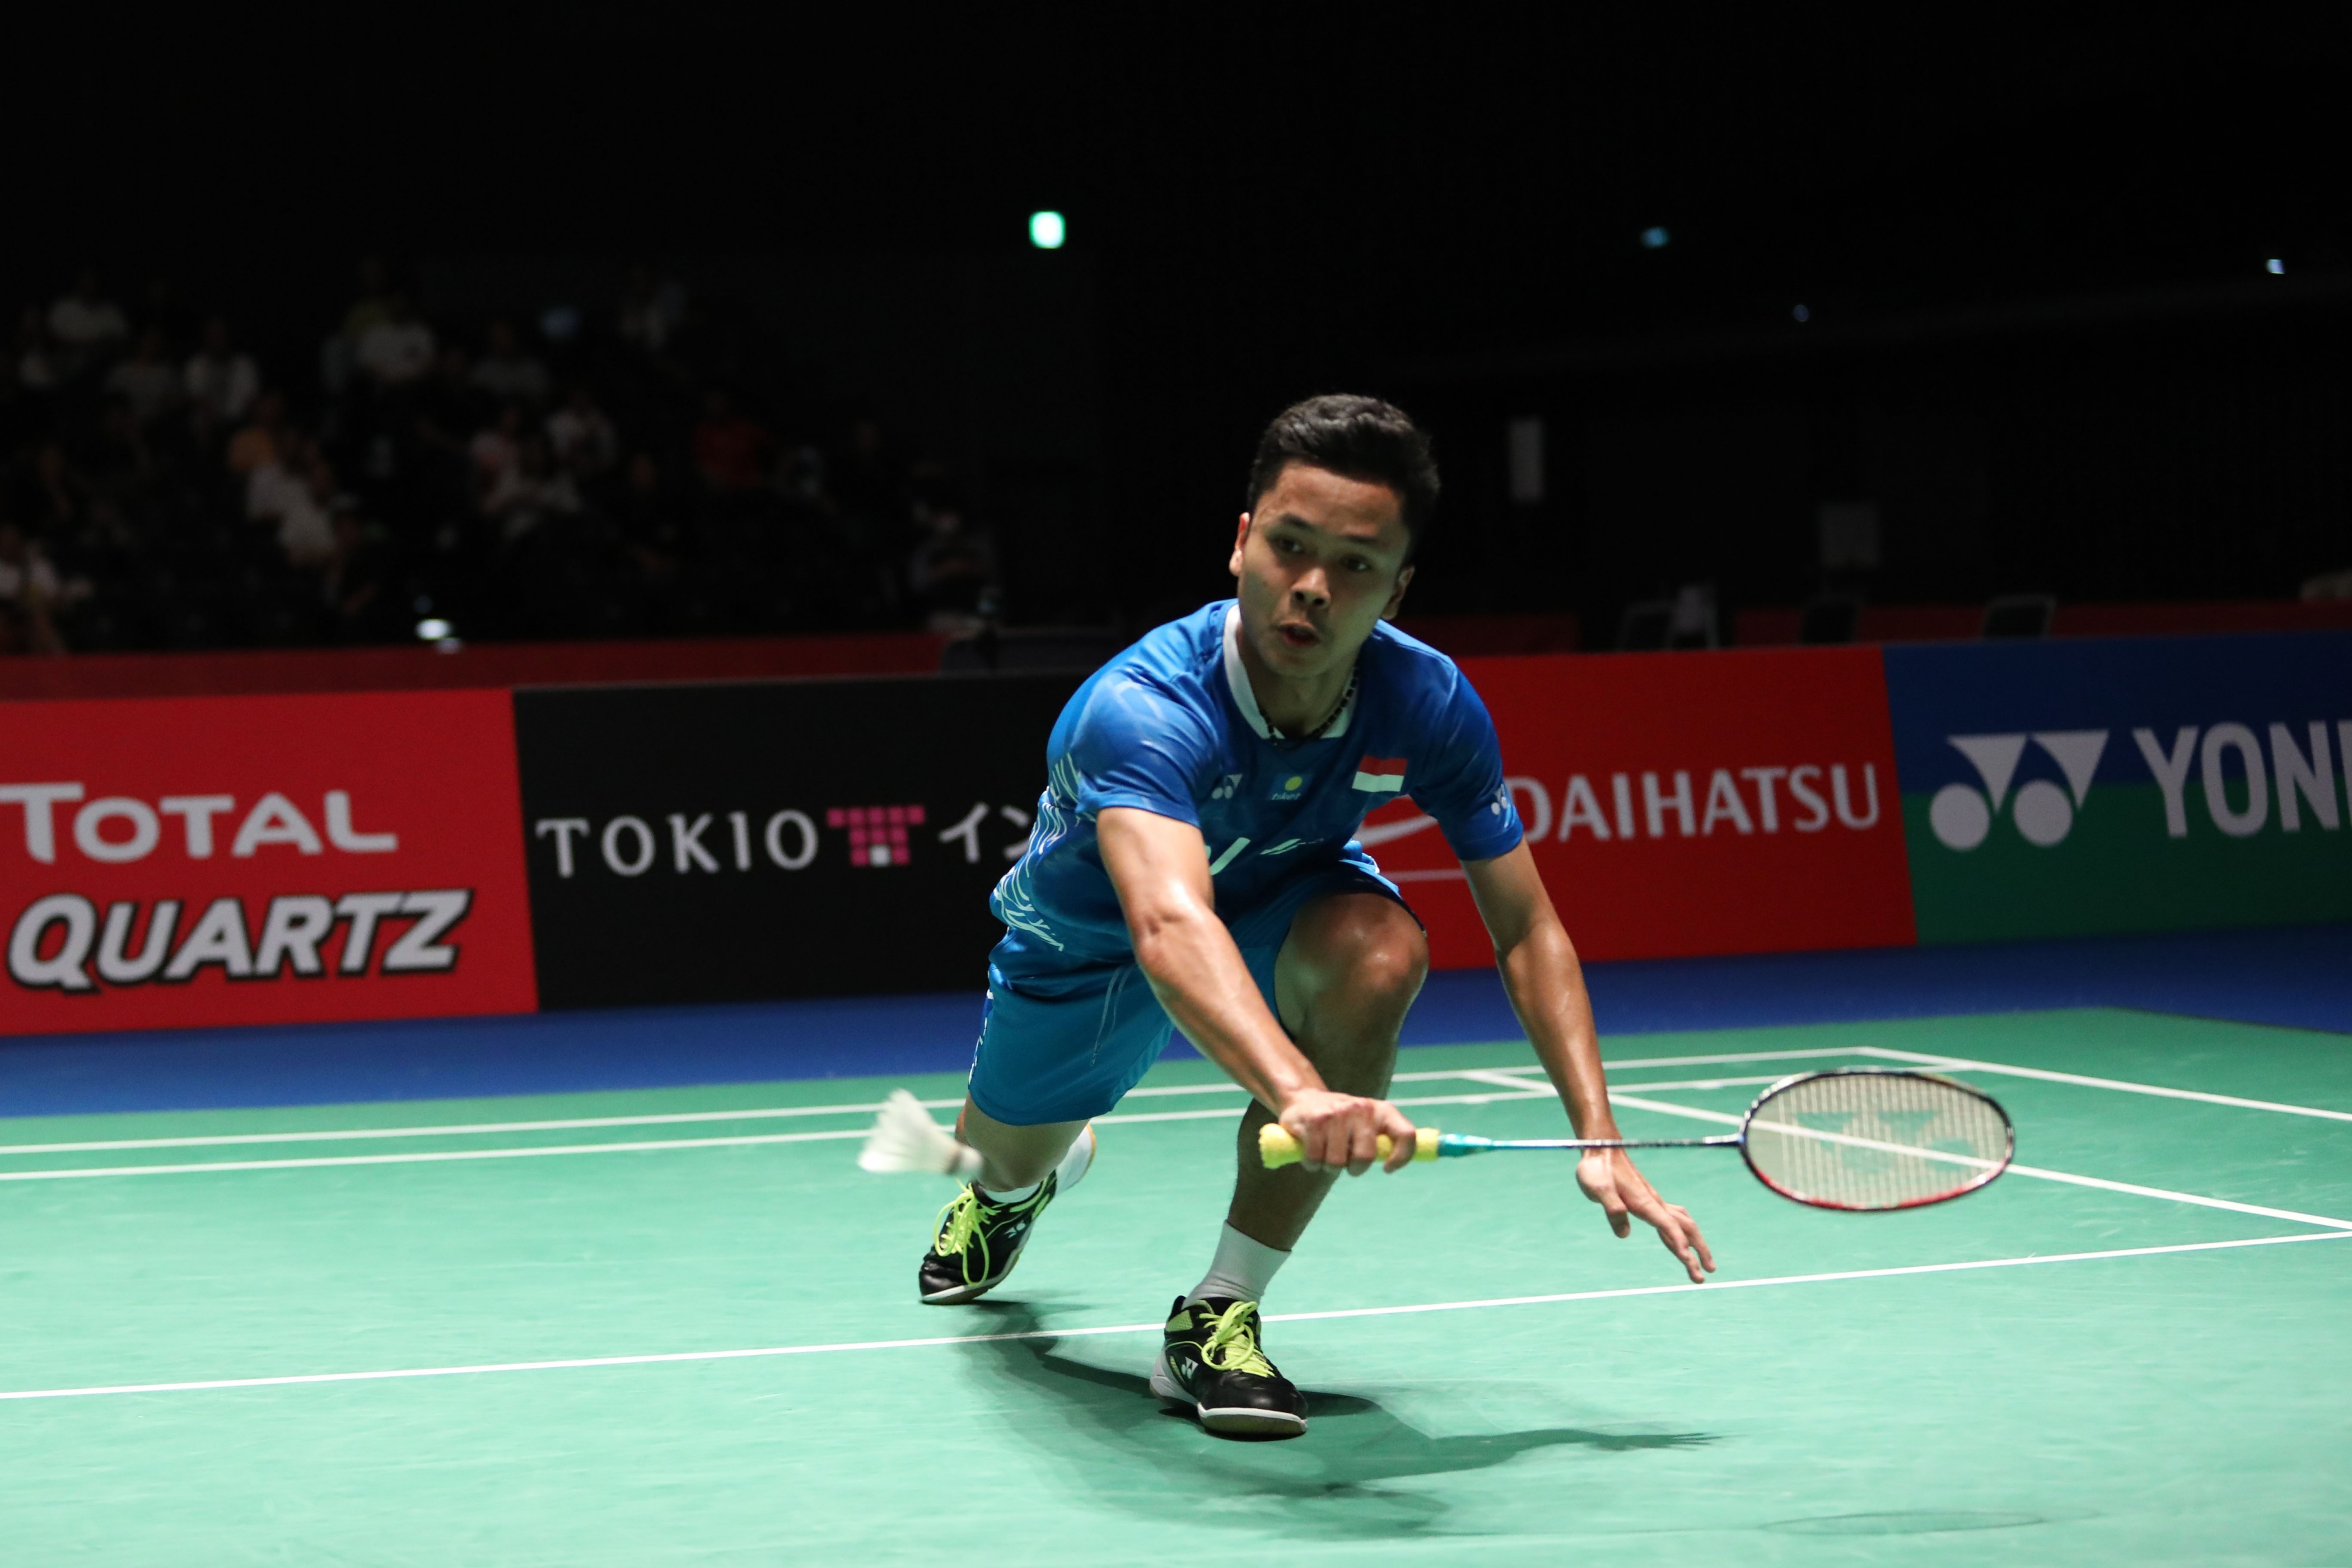 Kunci Anthony Ginting Tumbangkan Lin Dan di China Open 2018